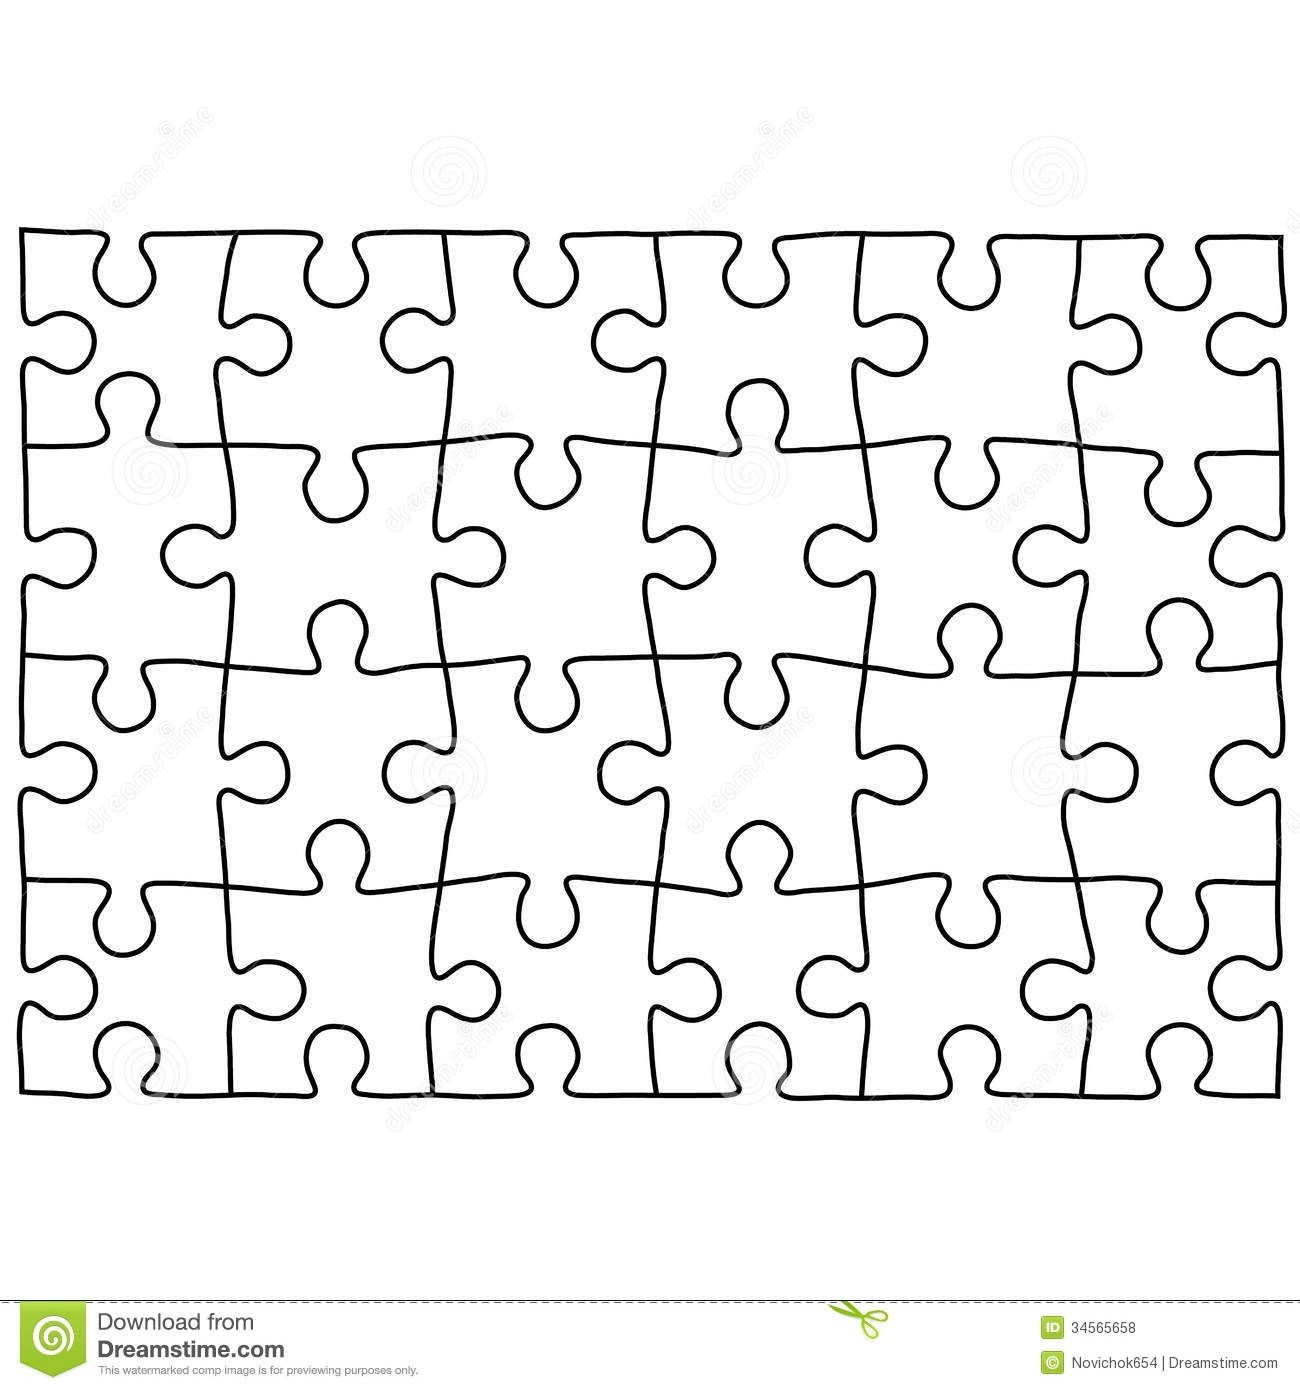 Jigsaw Puzzle Design Template | Free Puzzle Templates 1300.1390 - Puzzle Maker Printable Free